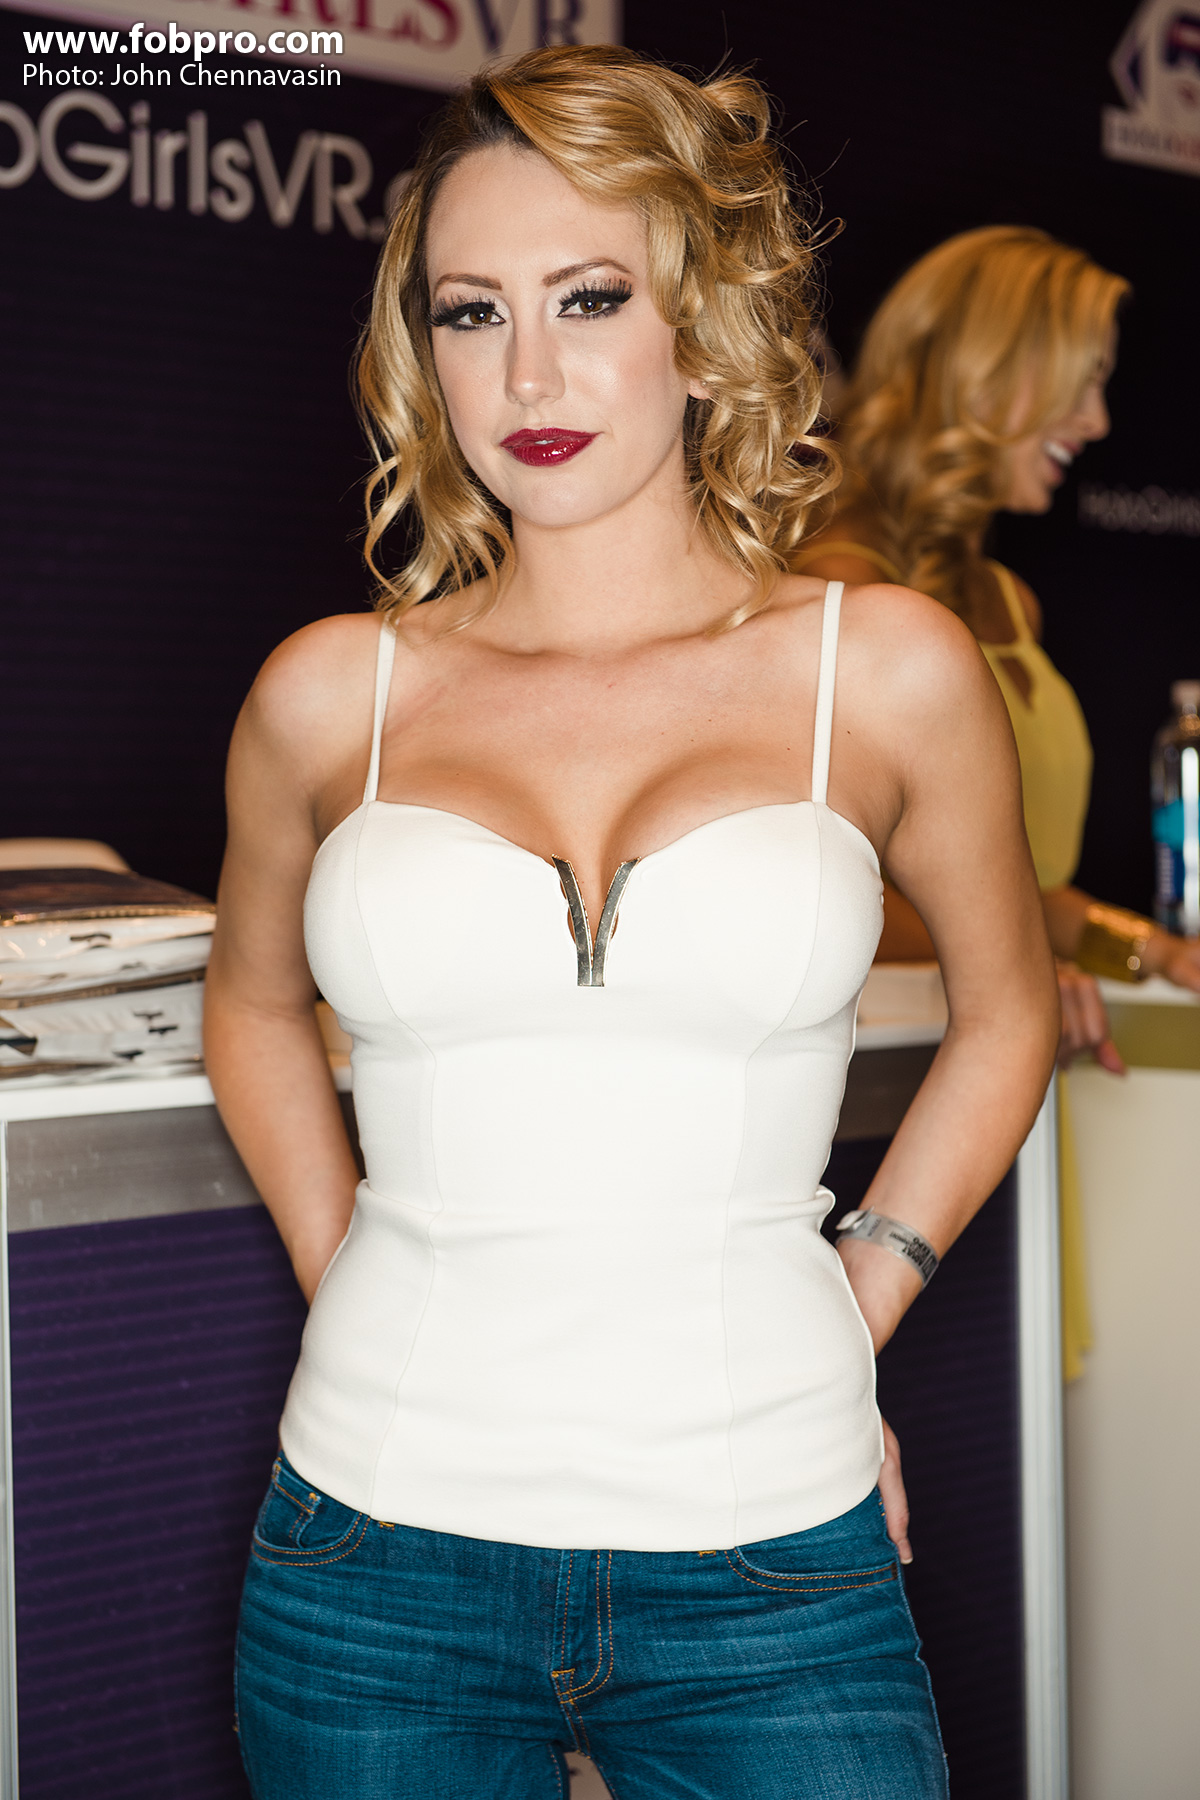 AVN Adult Entertainment Expo 2016 Day 4 (Page 4 of 22